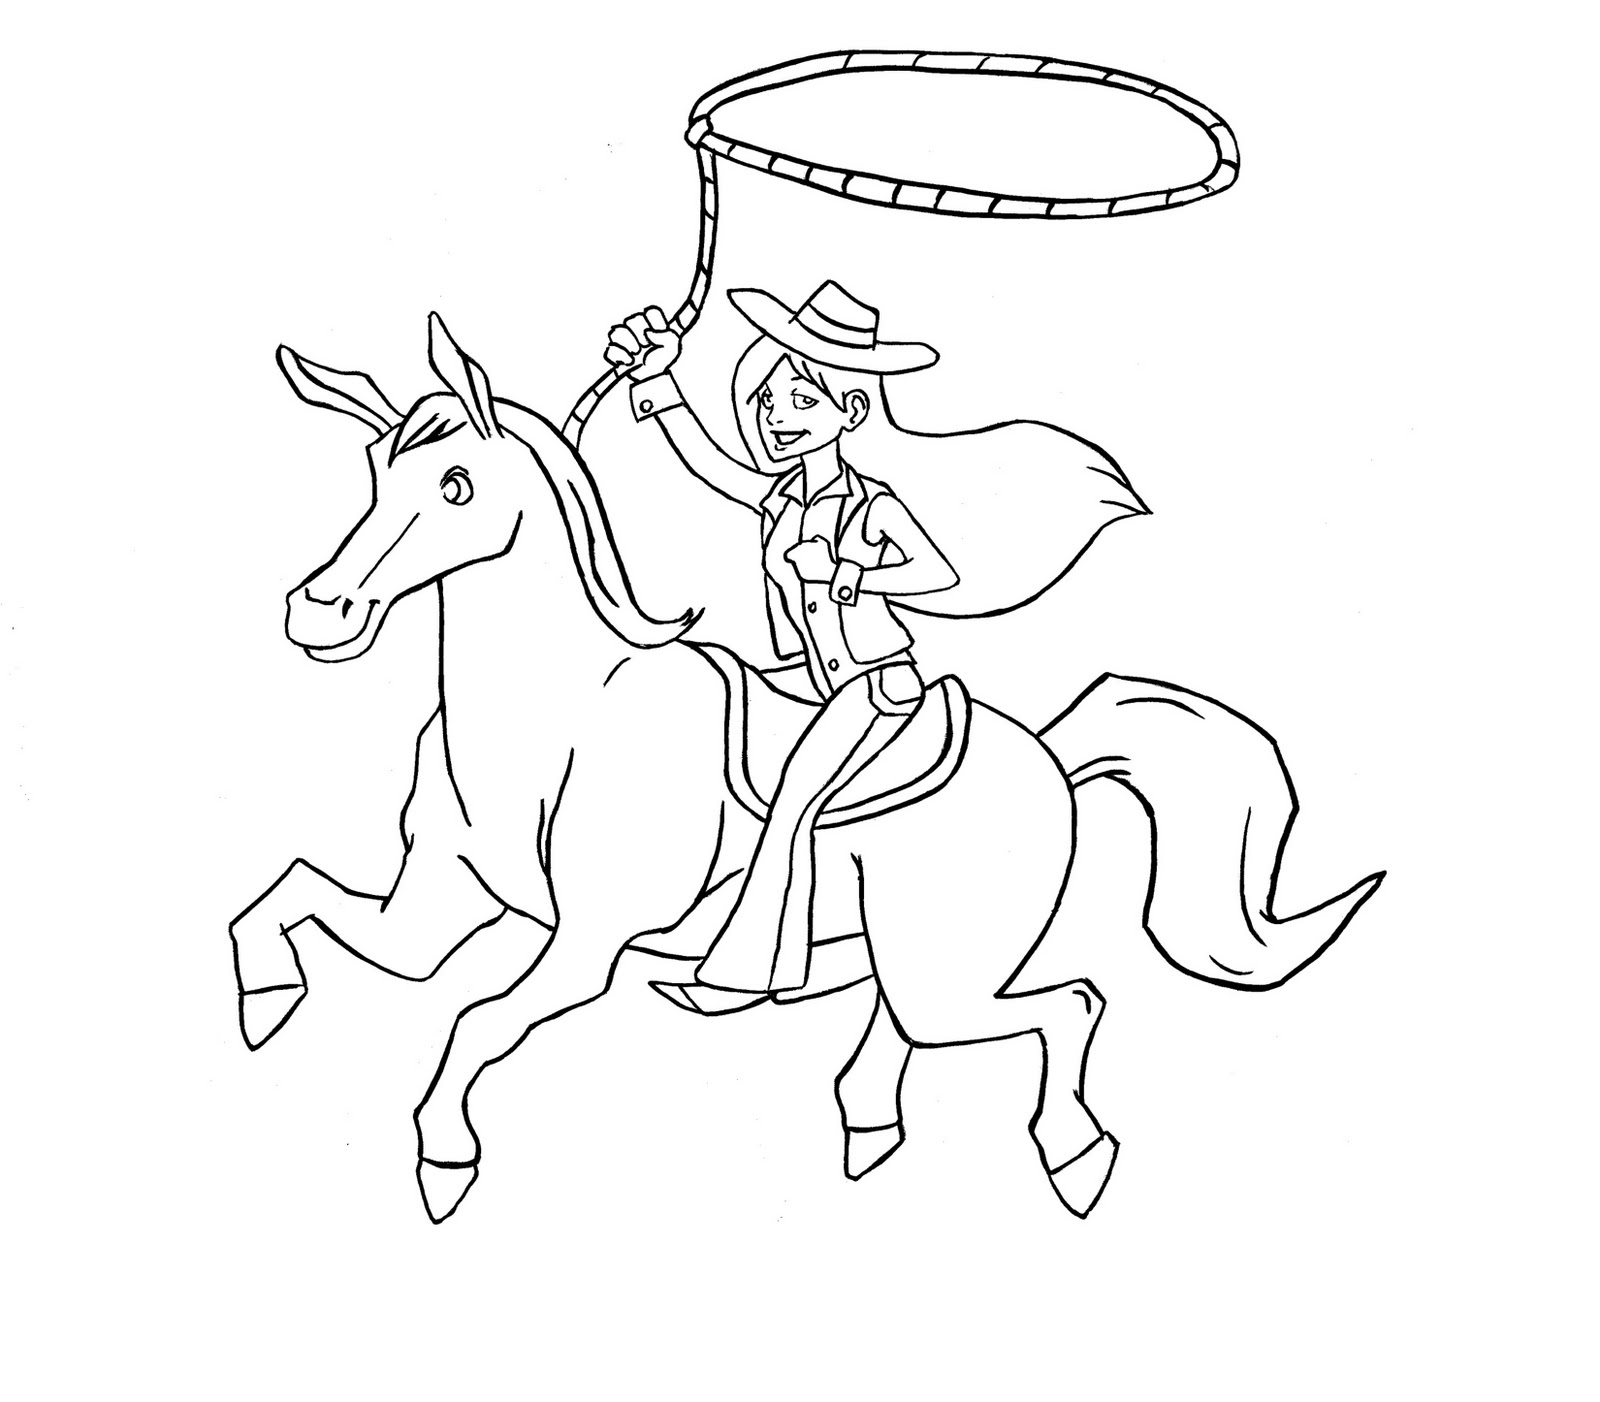 girl riding horse coloring pages - photo#29